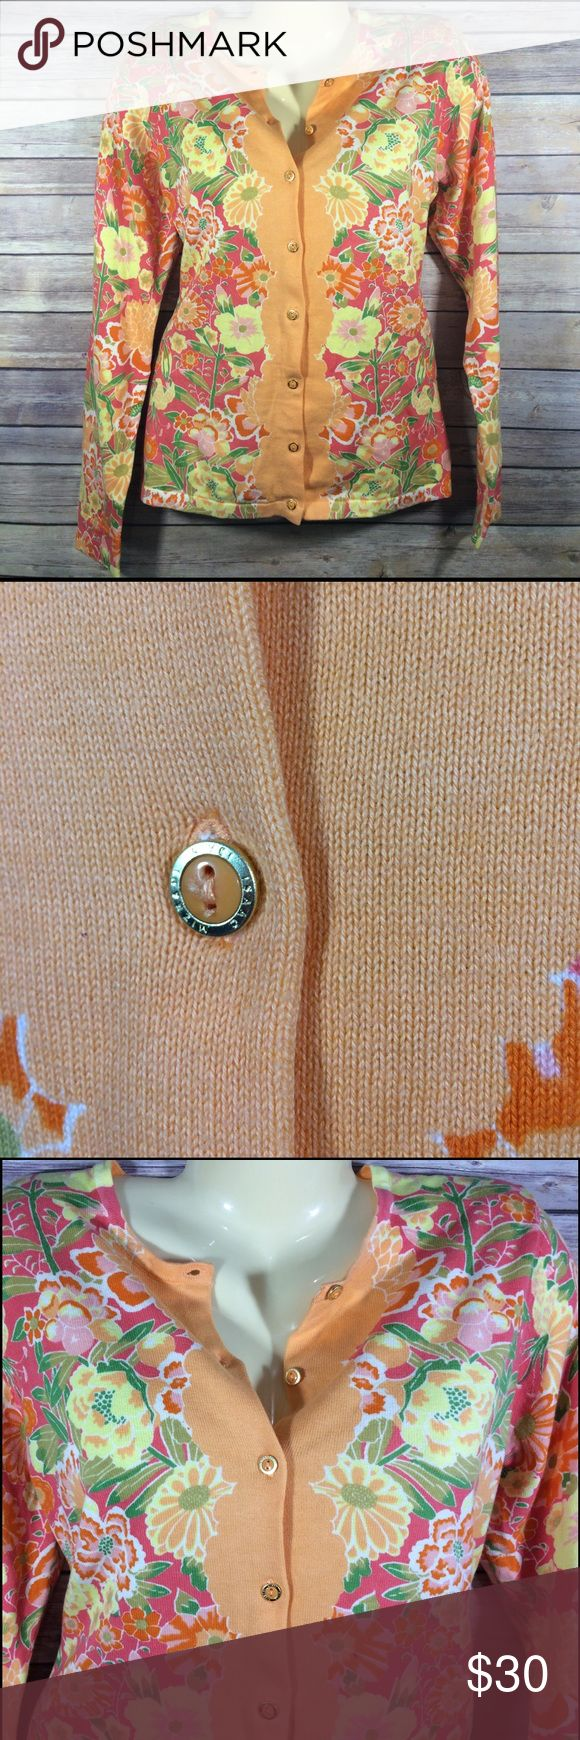 Isaac Mizrahi Live Orange Floral Flower Cardigan M Isaac Mizrahi Live! Orange Spring Floral Boyfriend button up cardigan. In beautiful like new condition! All colors are still very vibrant! Size plus size medium.  All of my closet is stored in a climate controlled storage unit! isaac mizrahi live Sweaters Cardigans